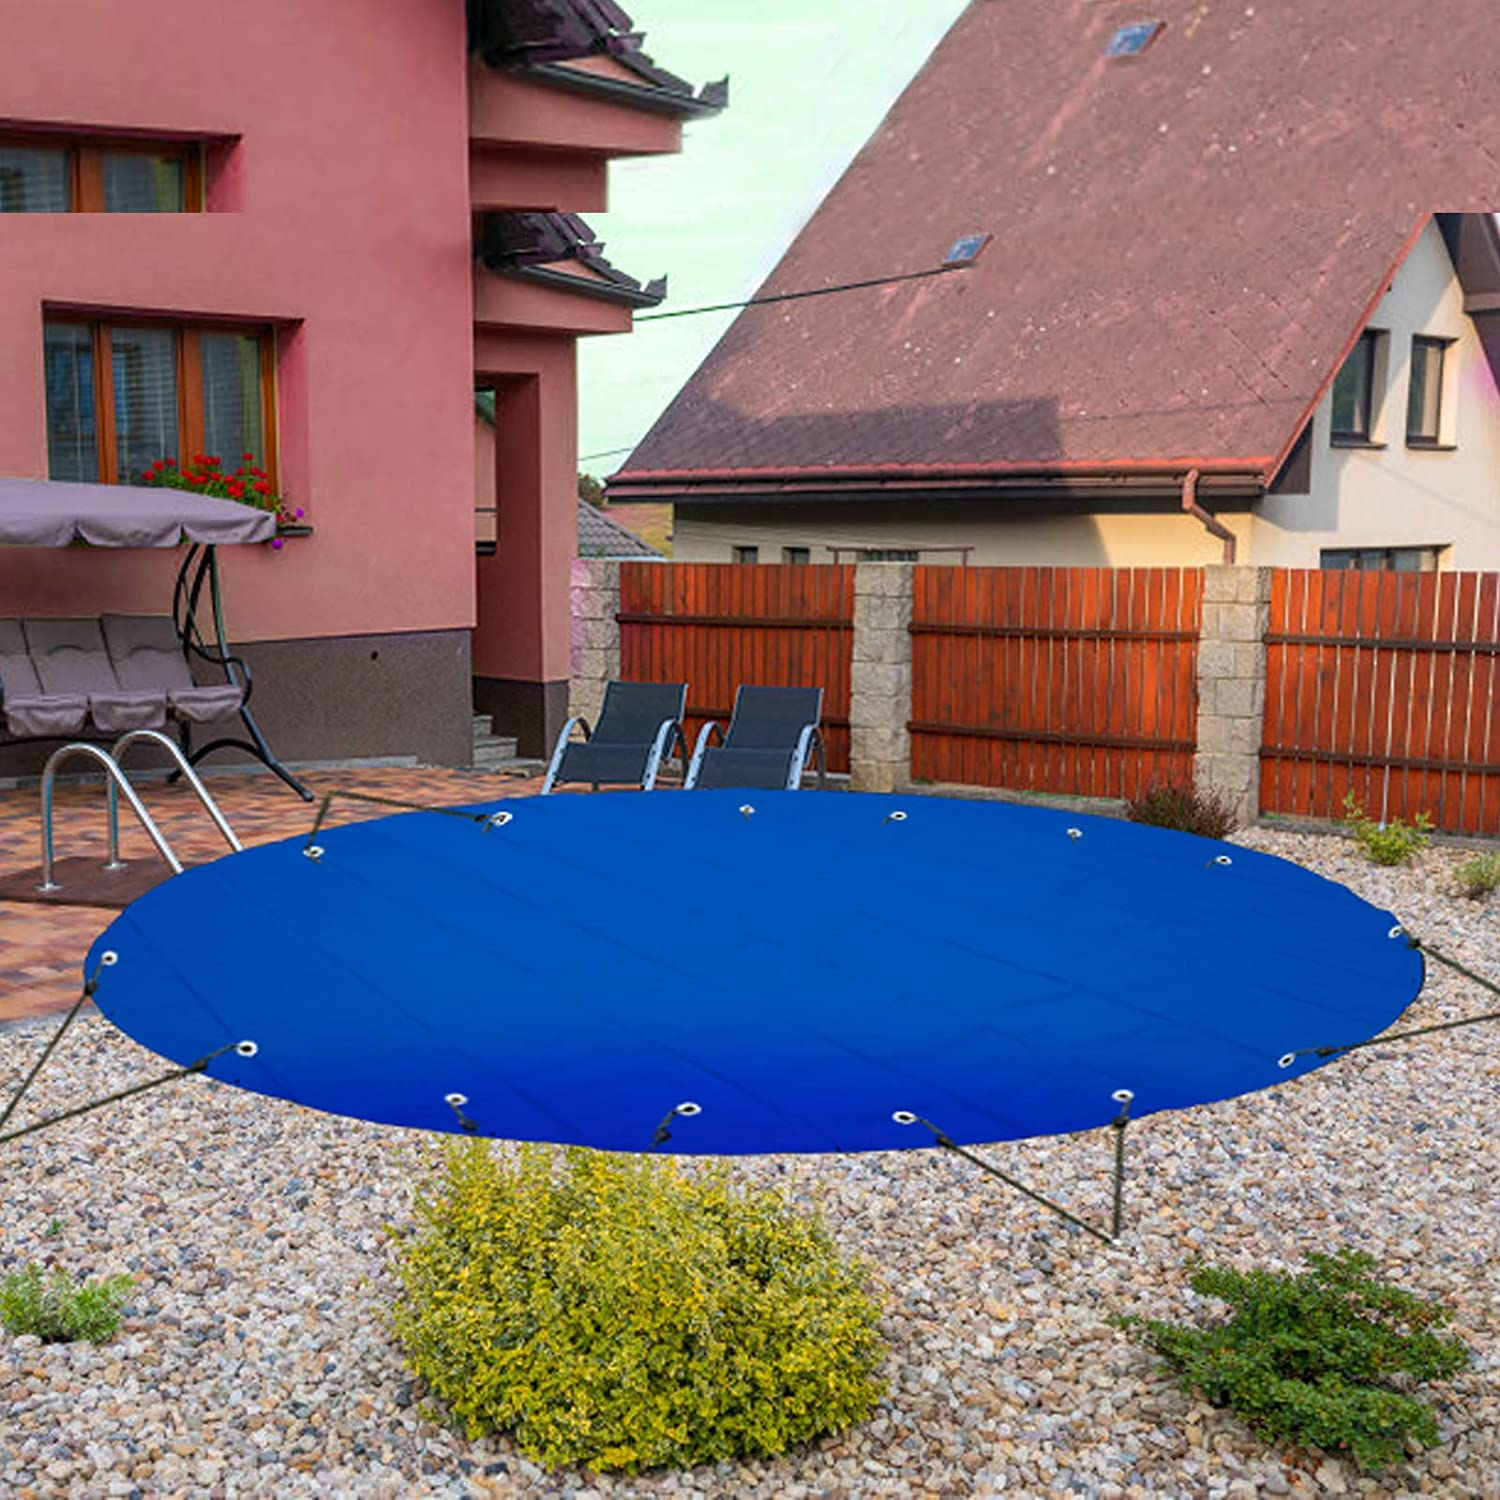 Quality inspection VEVOR Surprise price Pool Safety Cover 14.7 Blue ft Dia. In-ground